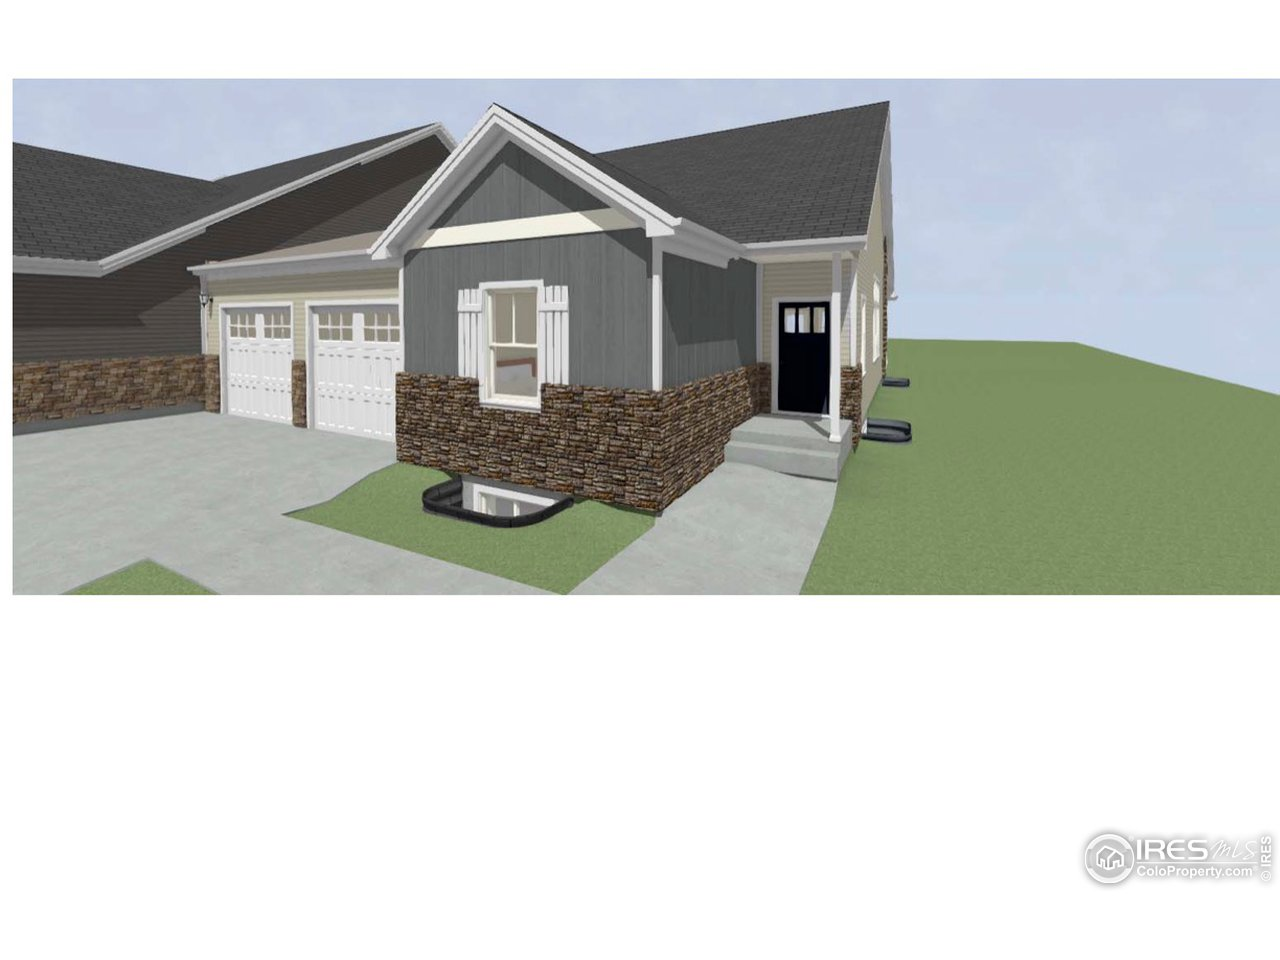 Building plans are available as well